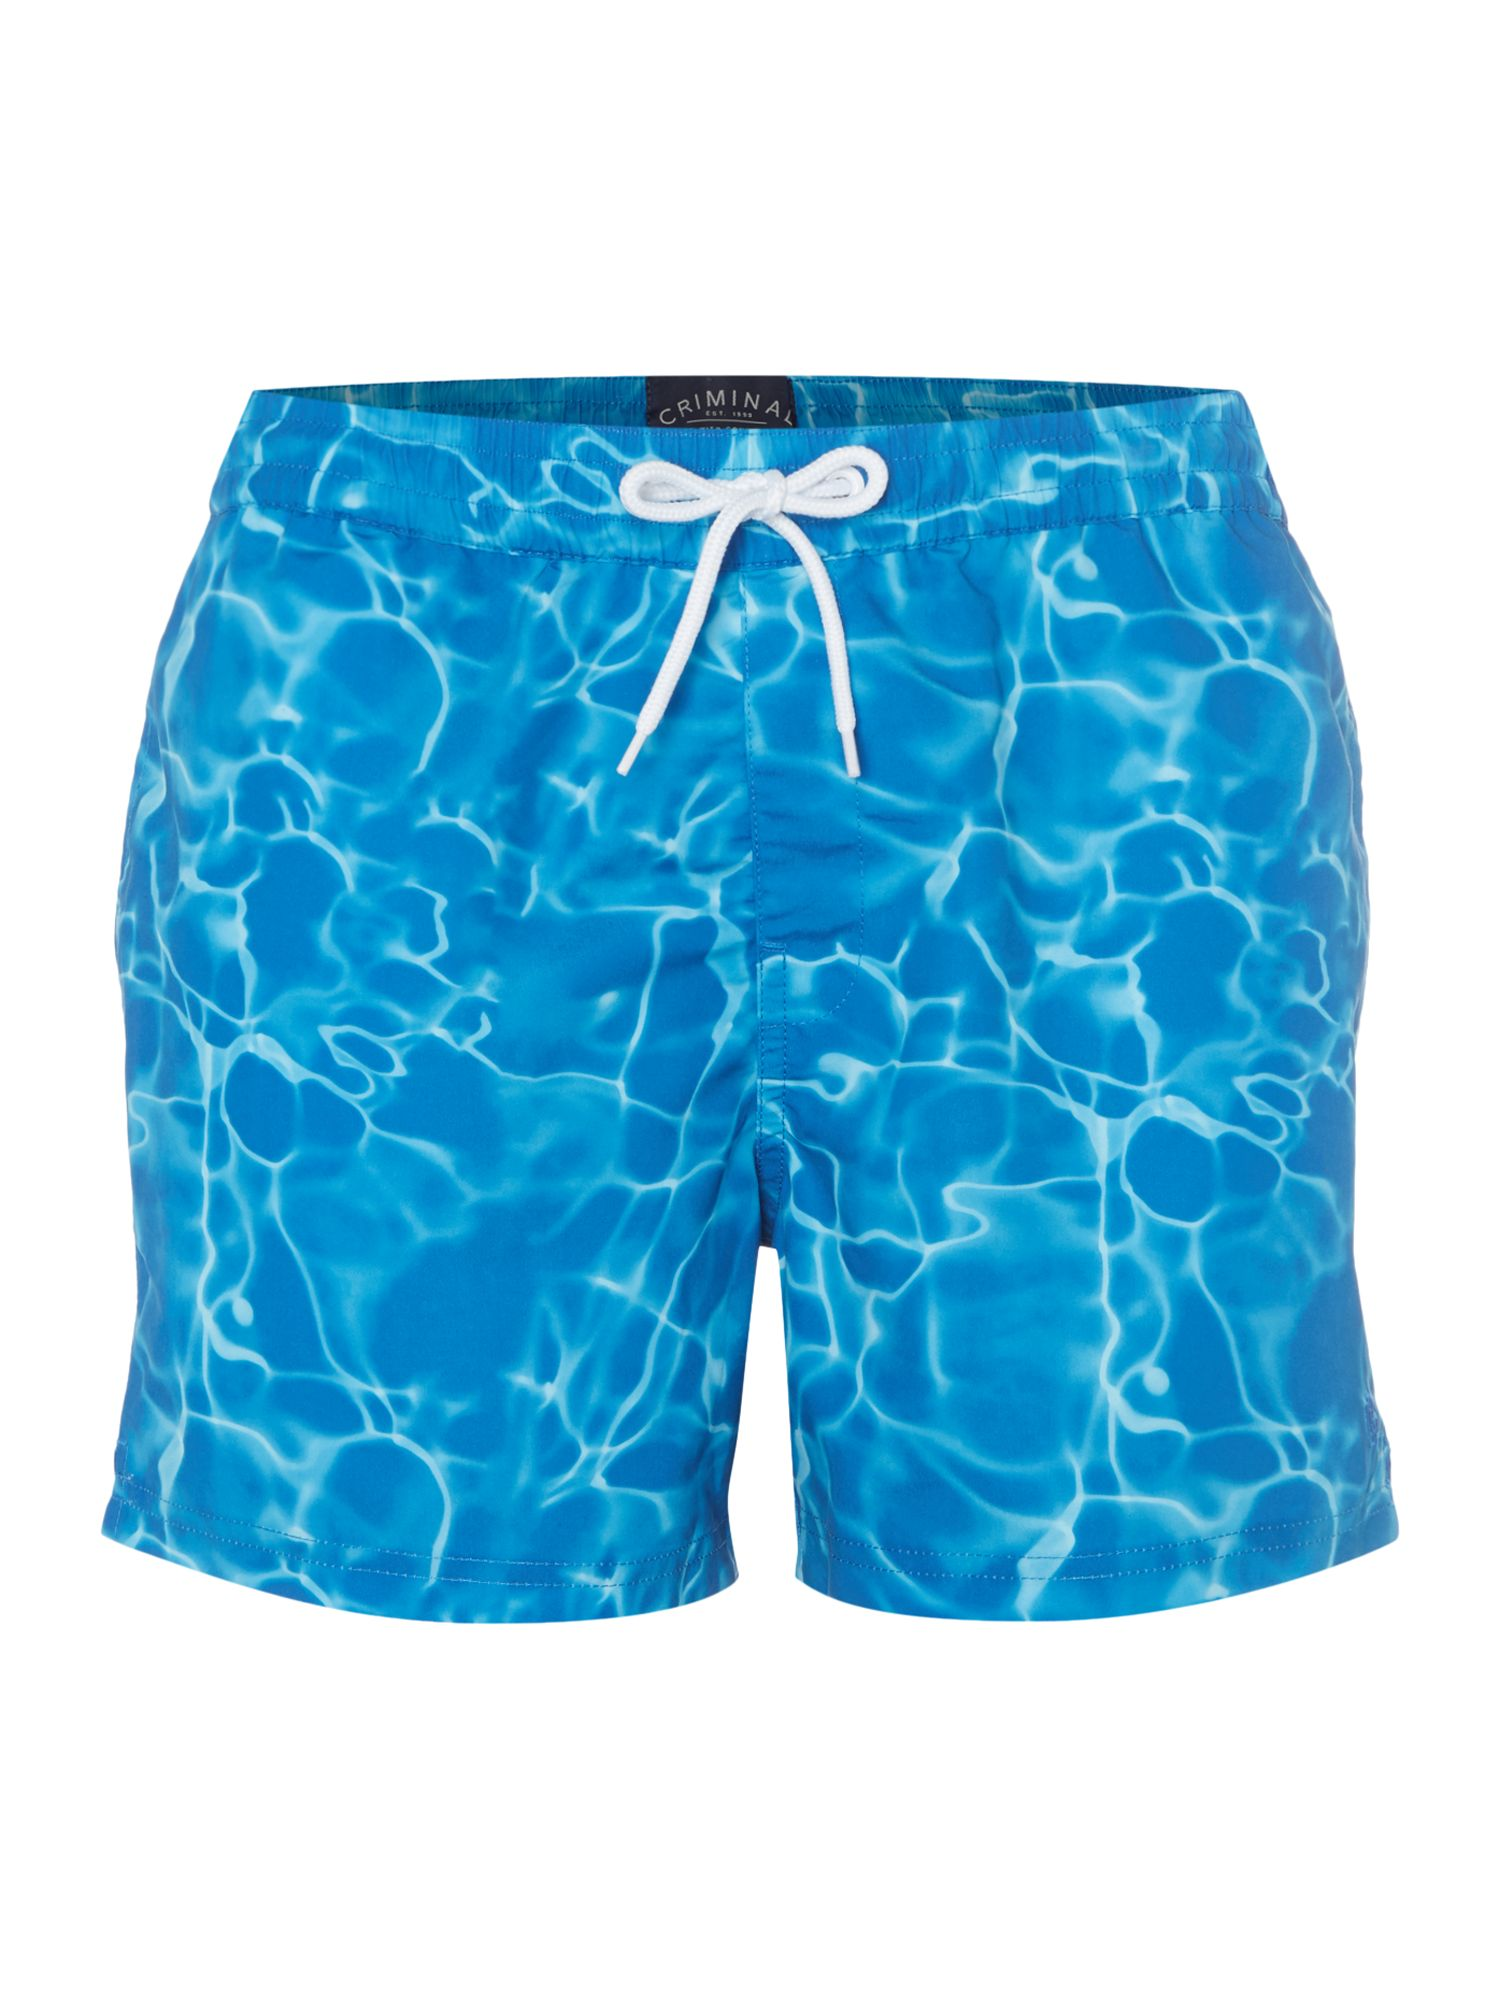 Men's Criminal Short Spec Short With Photo Water Print, Blue